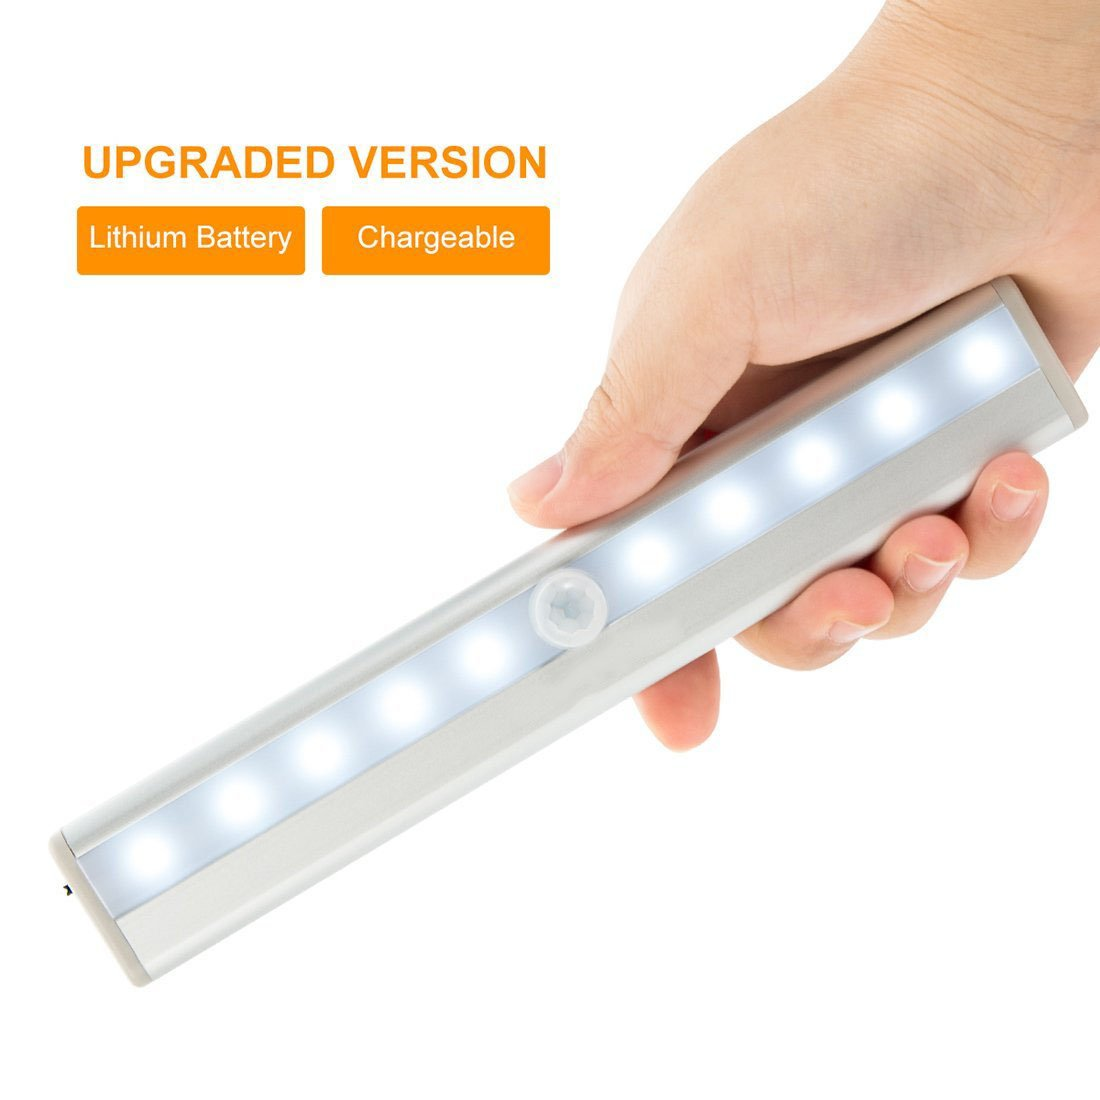 Vilso LED T-02U USB Rechargeable 10 Bright LED Night Light, Stick-on Anywhere Motion Sensing Light Bar